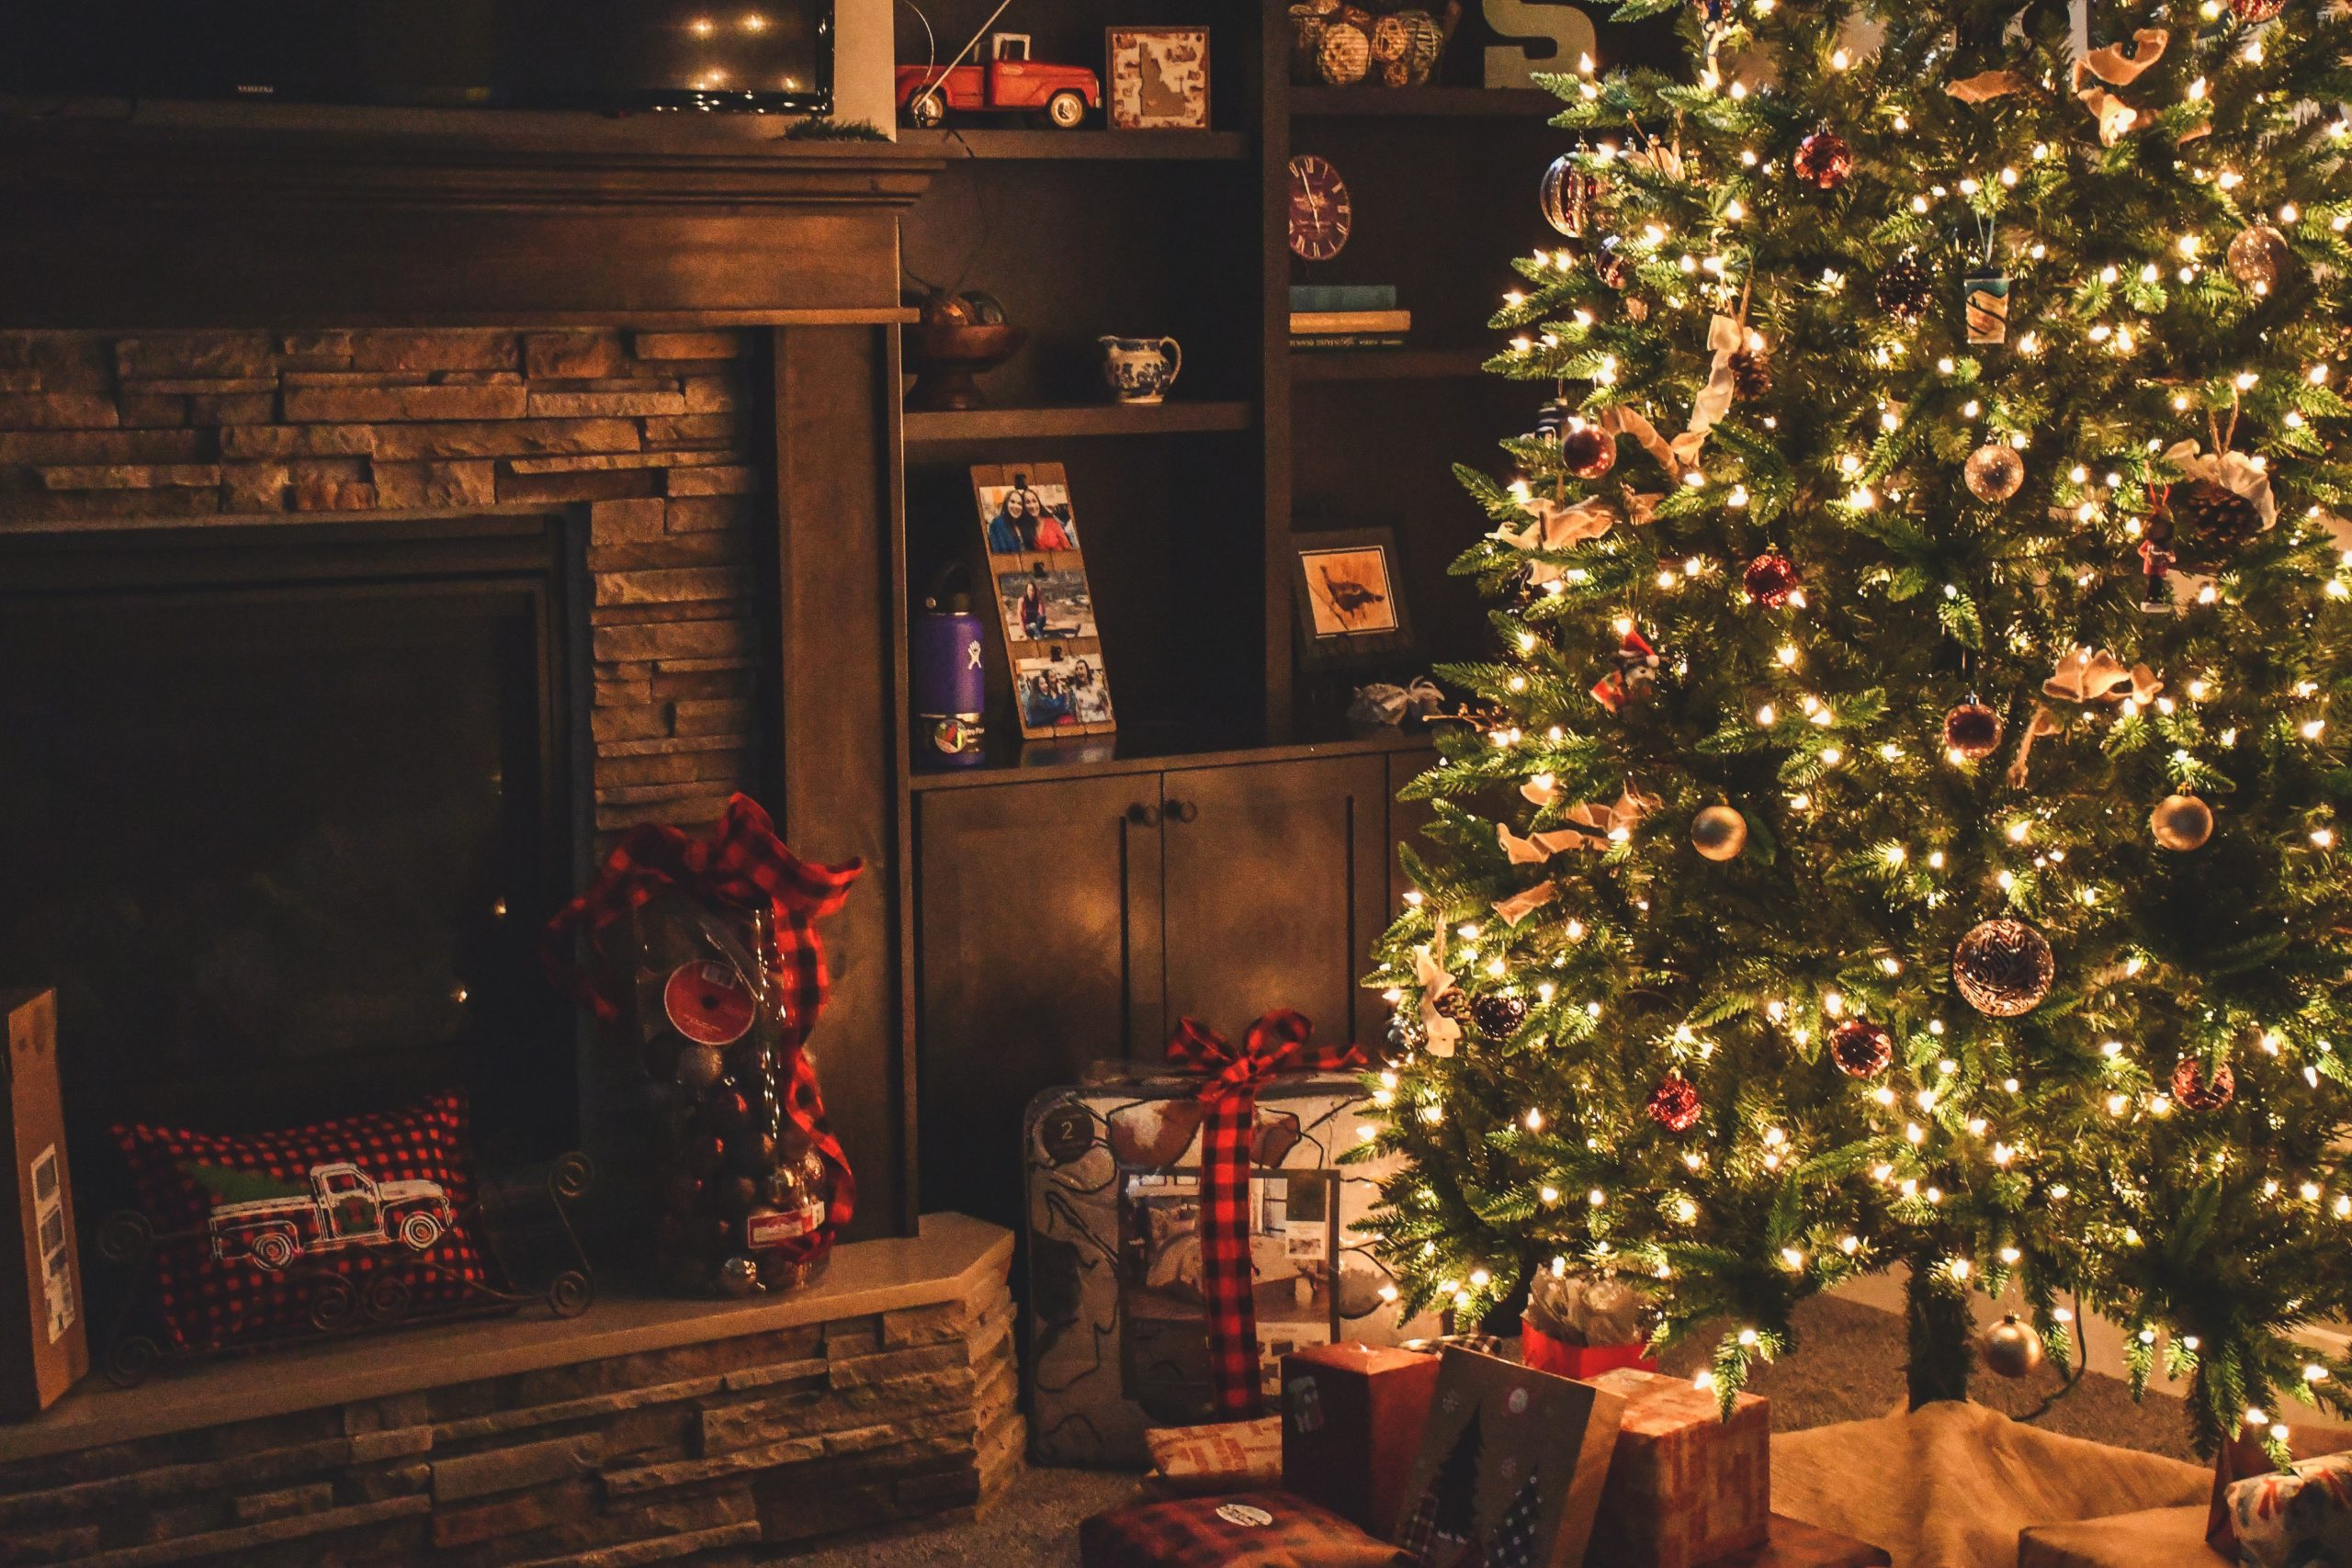 How to celebrate Christmas remotely